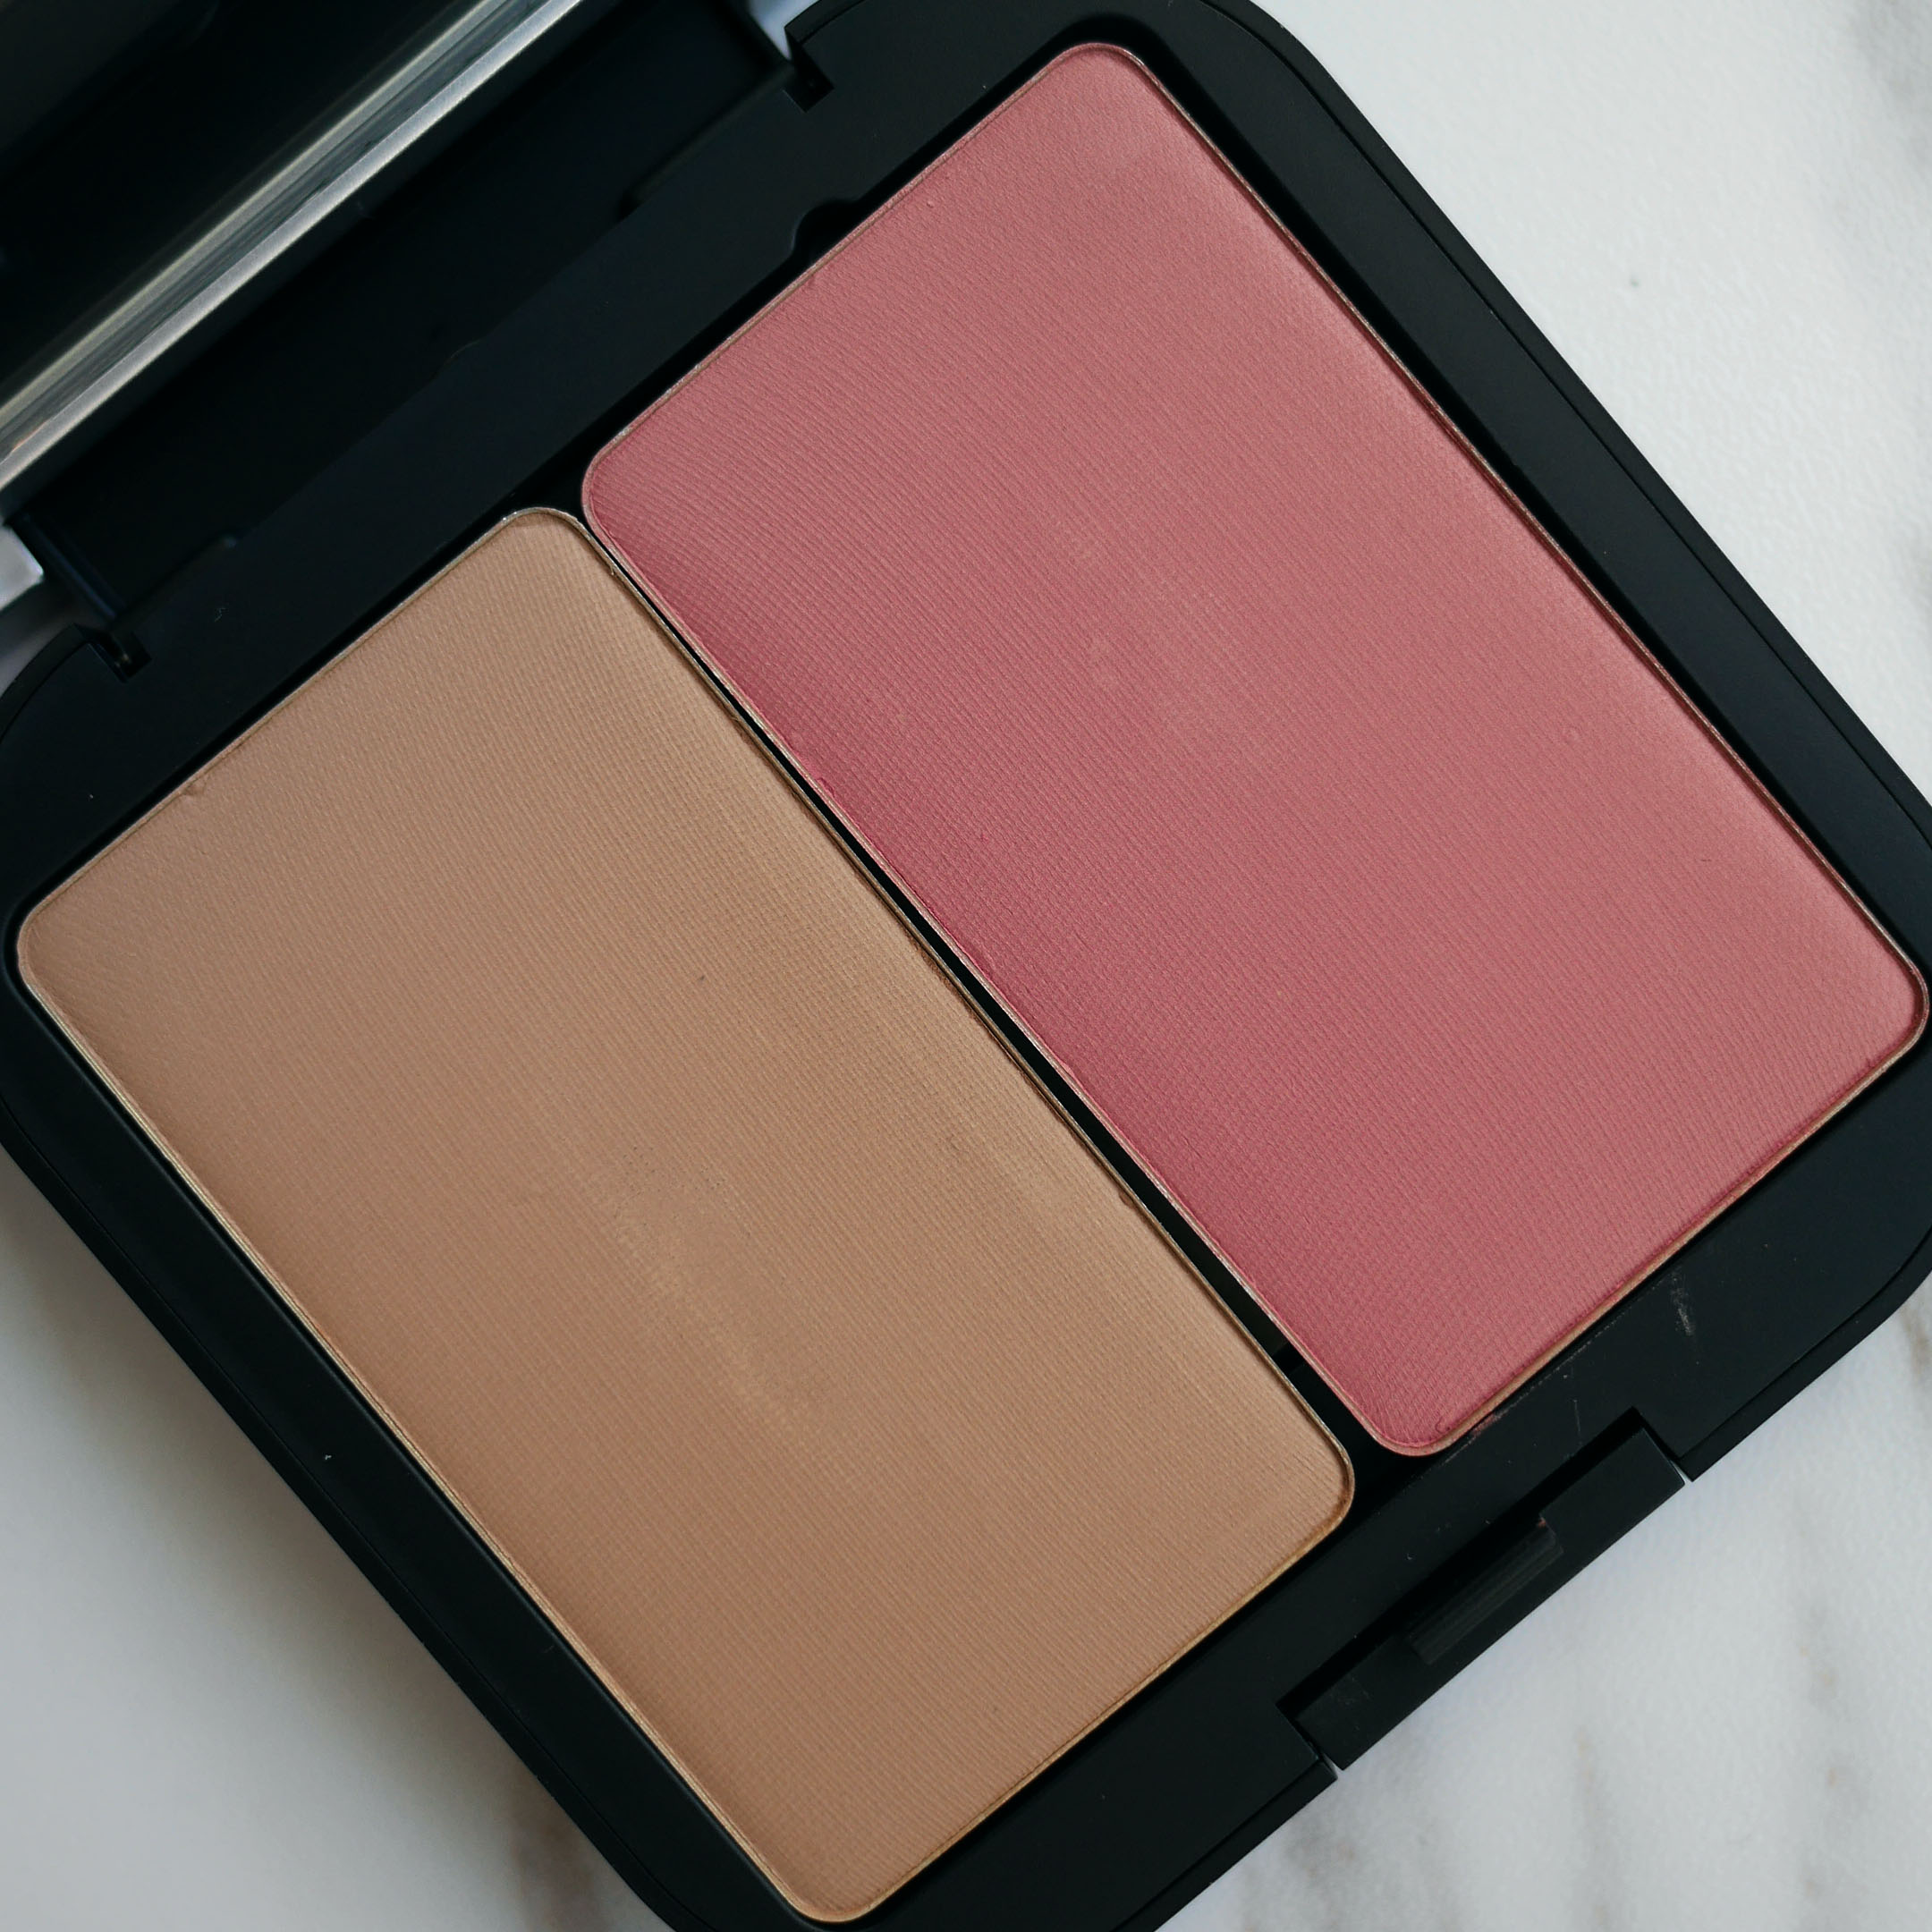 Make Up For Ever Artist Face Color blush contour powder S112 S214 review 2